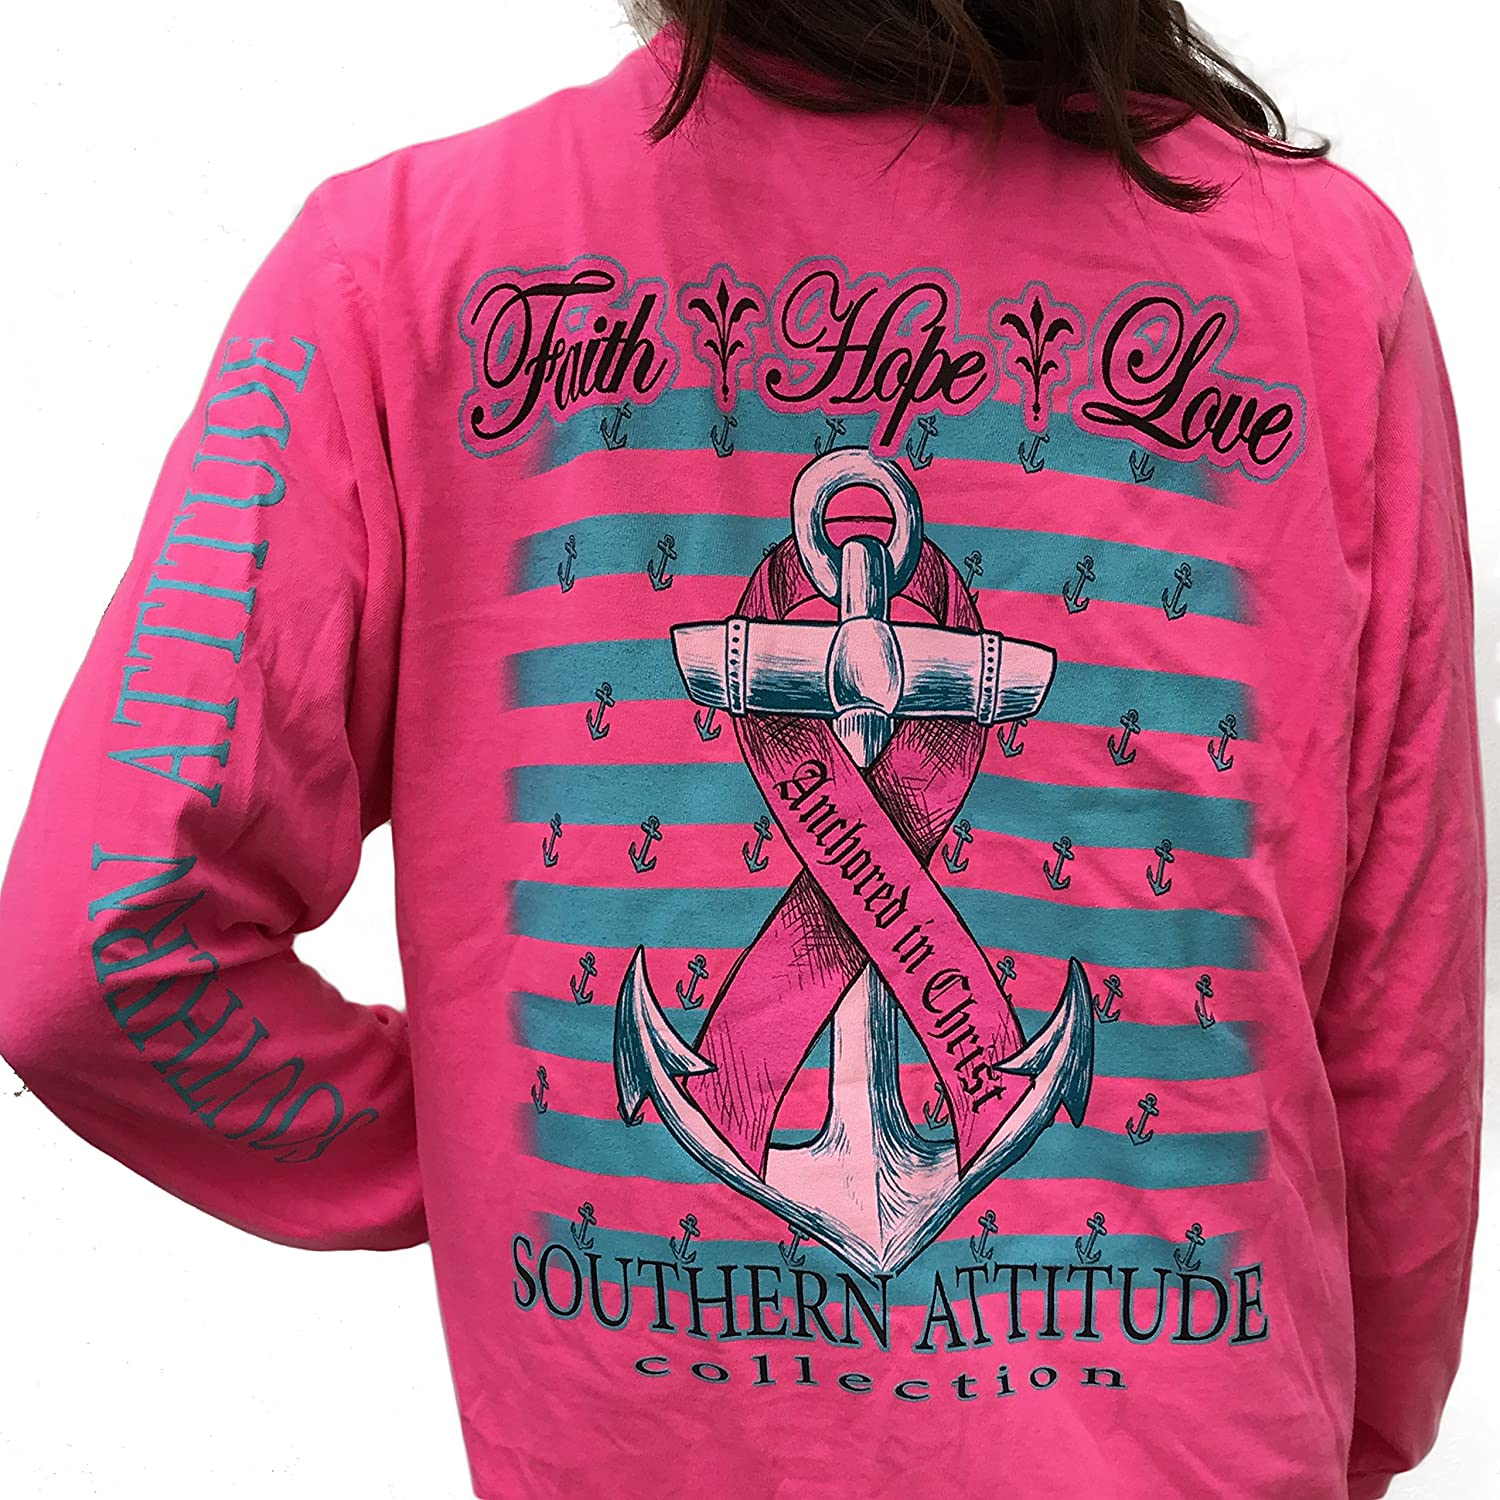 Southern Attitude Hope Breast Cancer Awareness Pink Long Sleeve Shirt